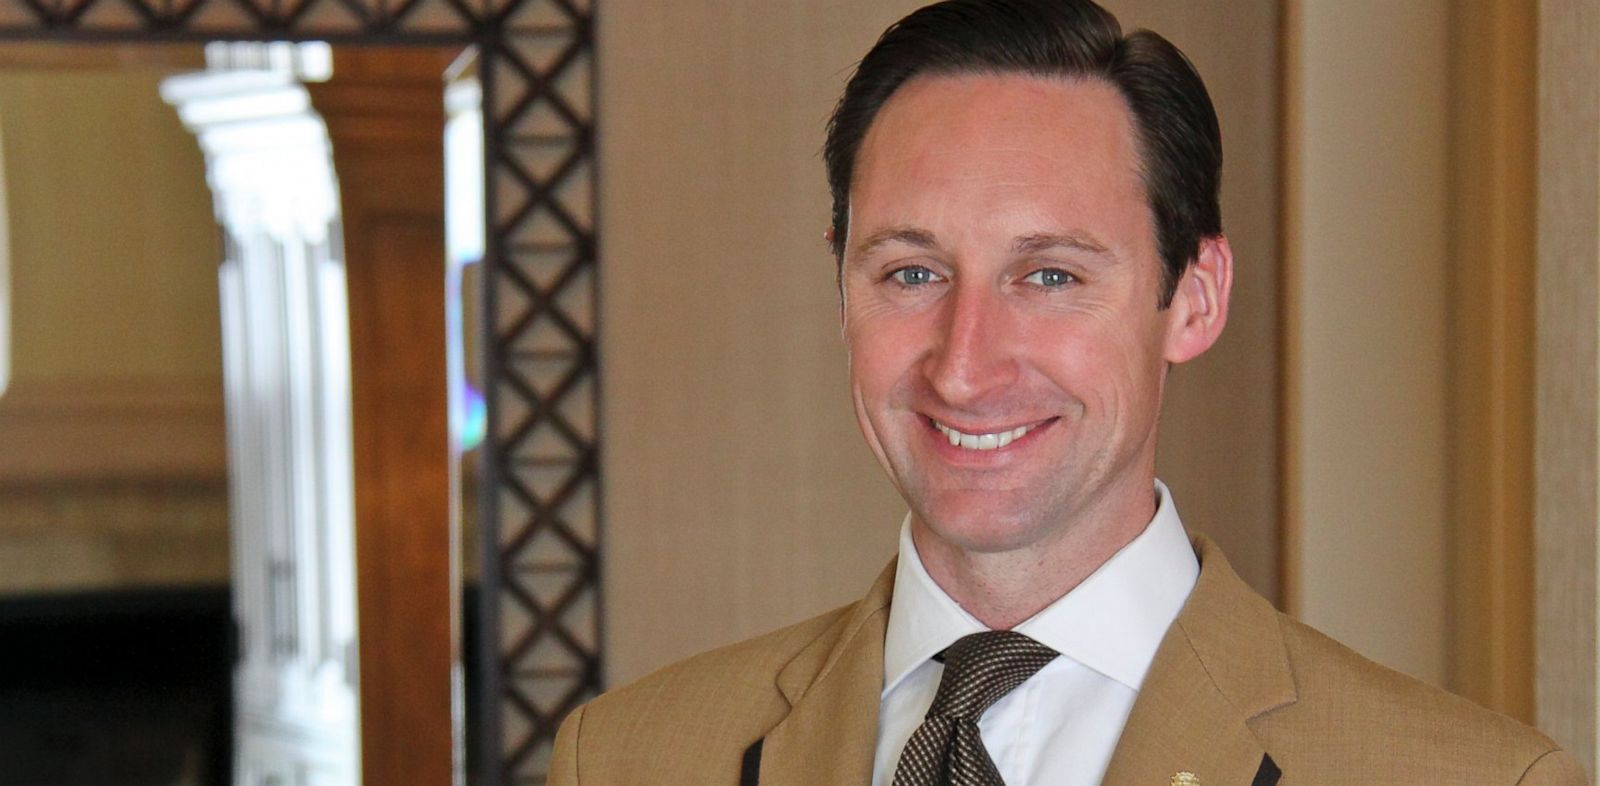 PHOTO: Alexander Mattinson, Head Butler of The St. Regis Deer Valley.